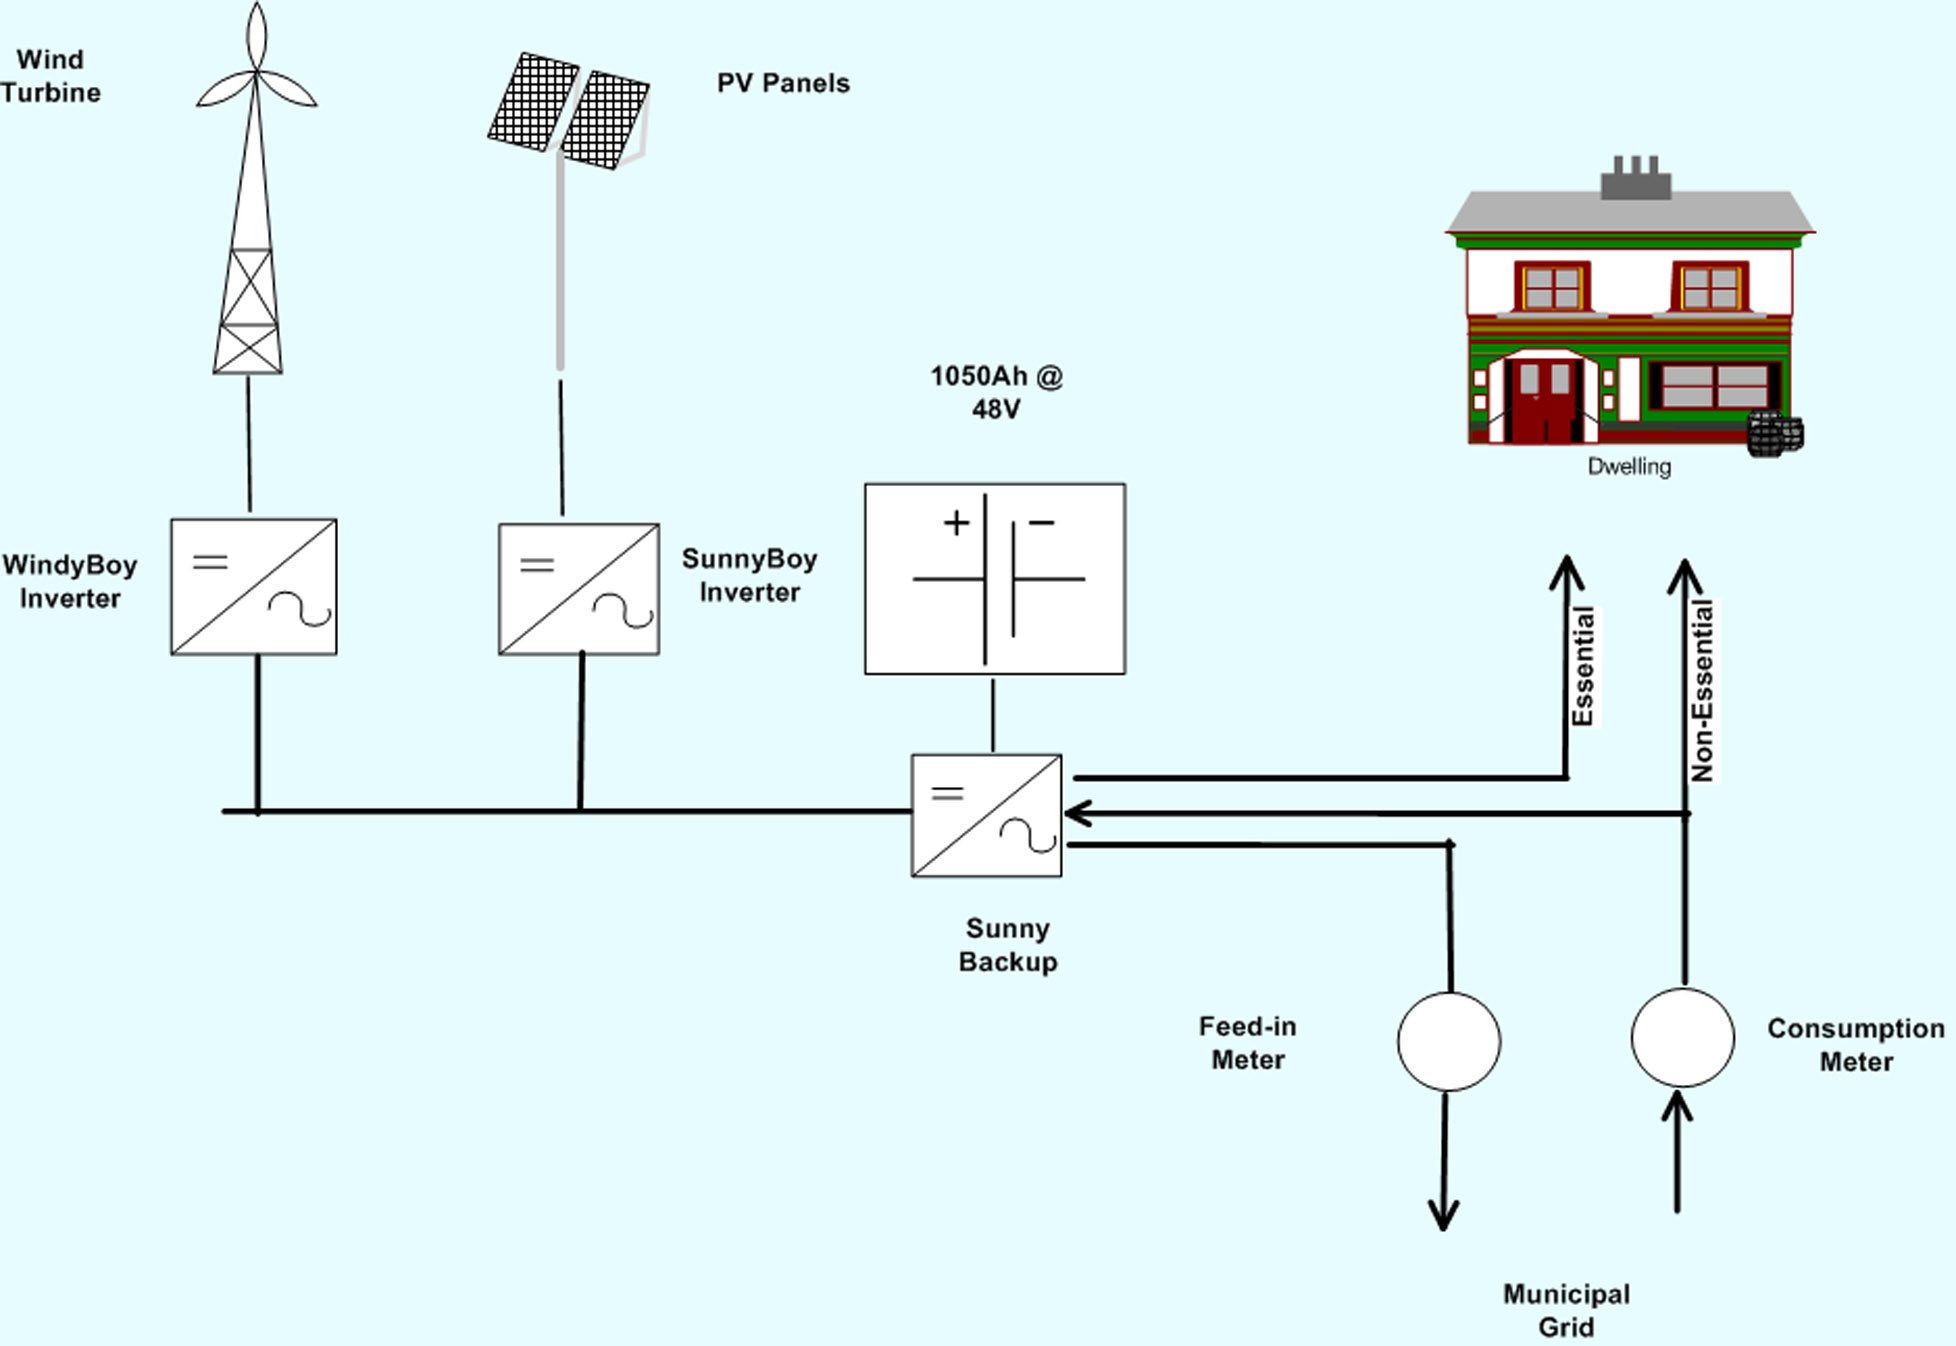 Wind Power Plant Diagram Nuclear Layout And Operation Images